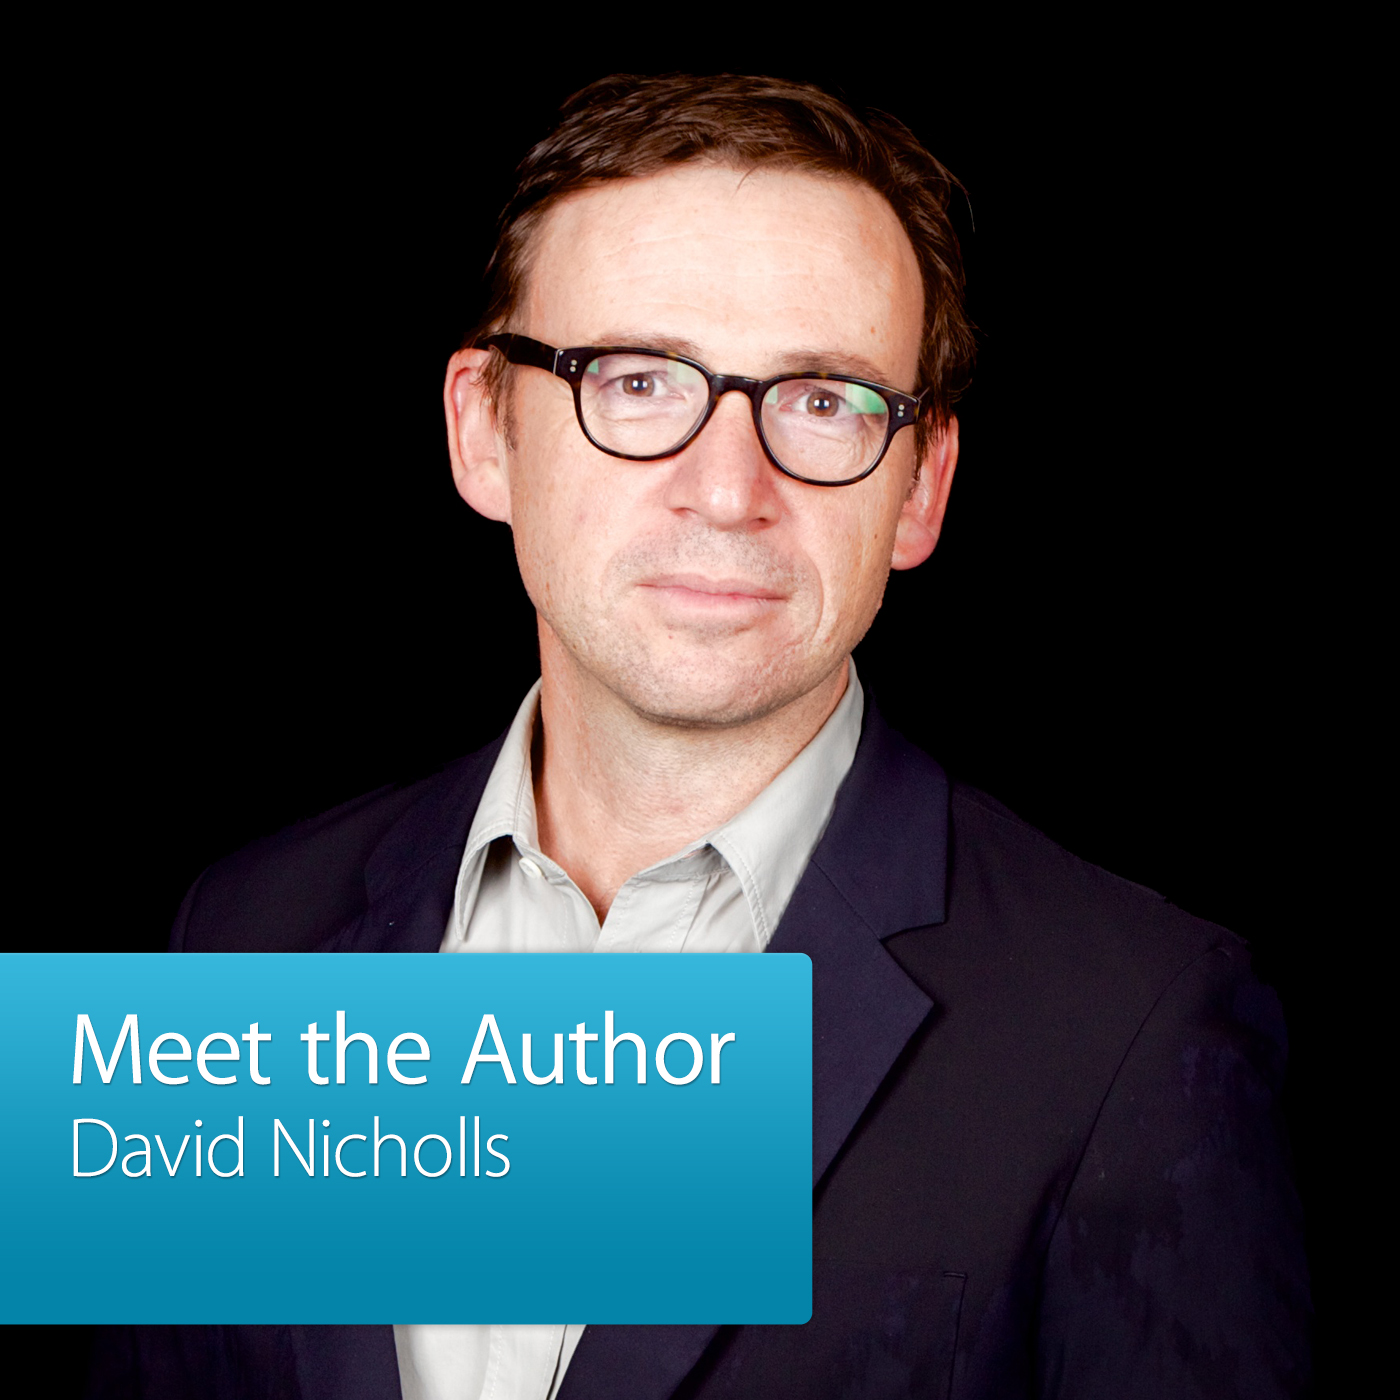 David Nicholls: Meet the Author